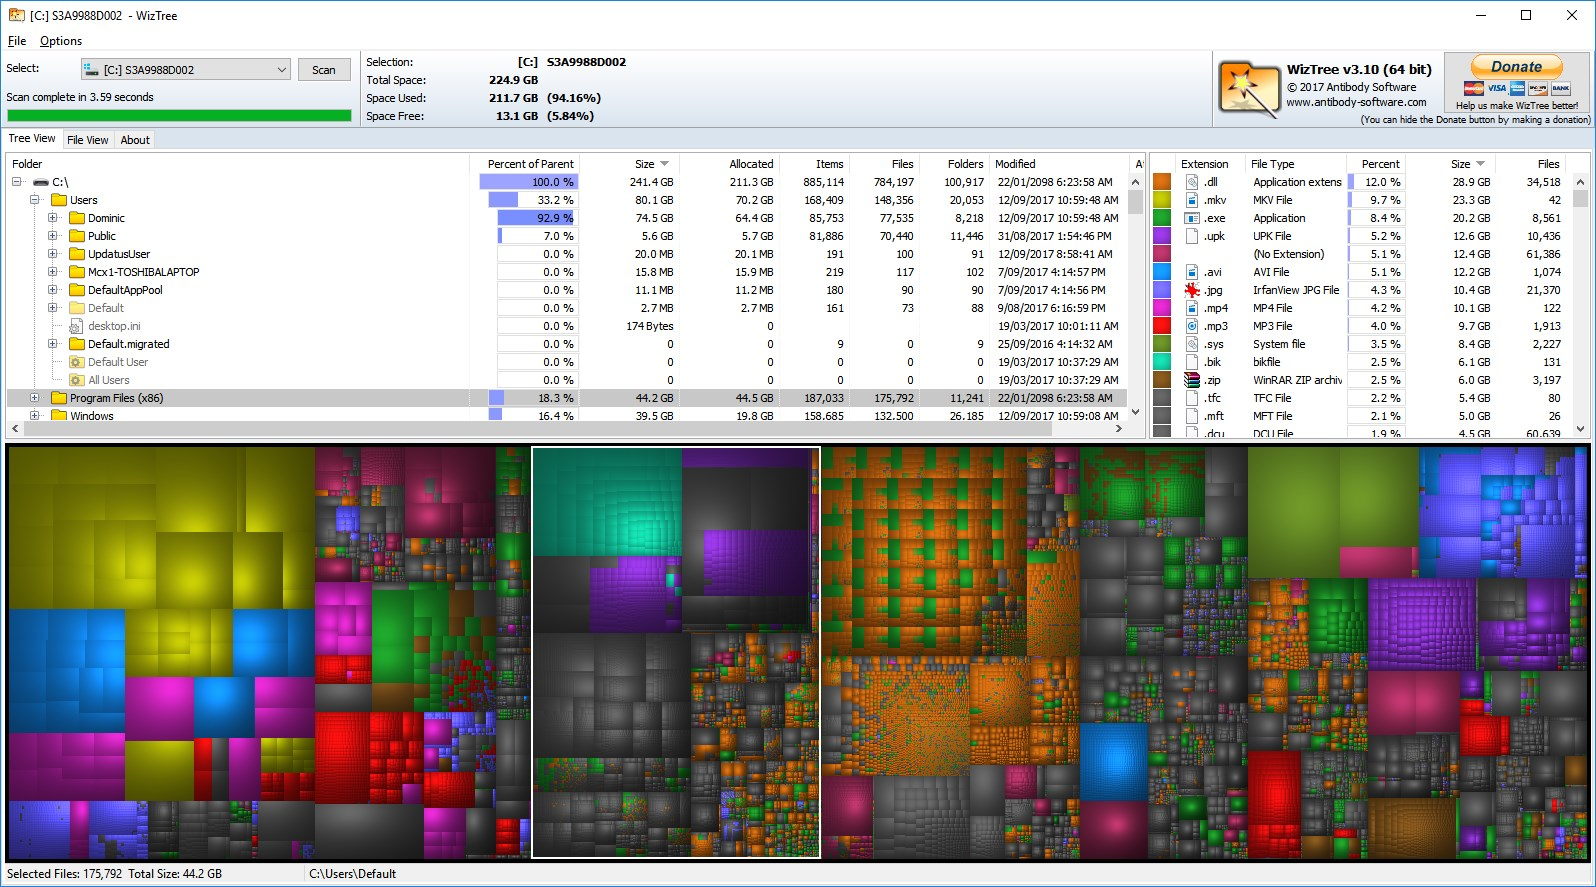 Antibody Software - WizTree finds the files and folders